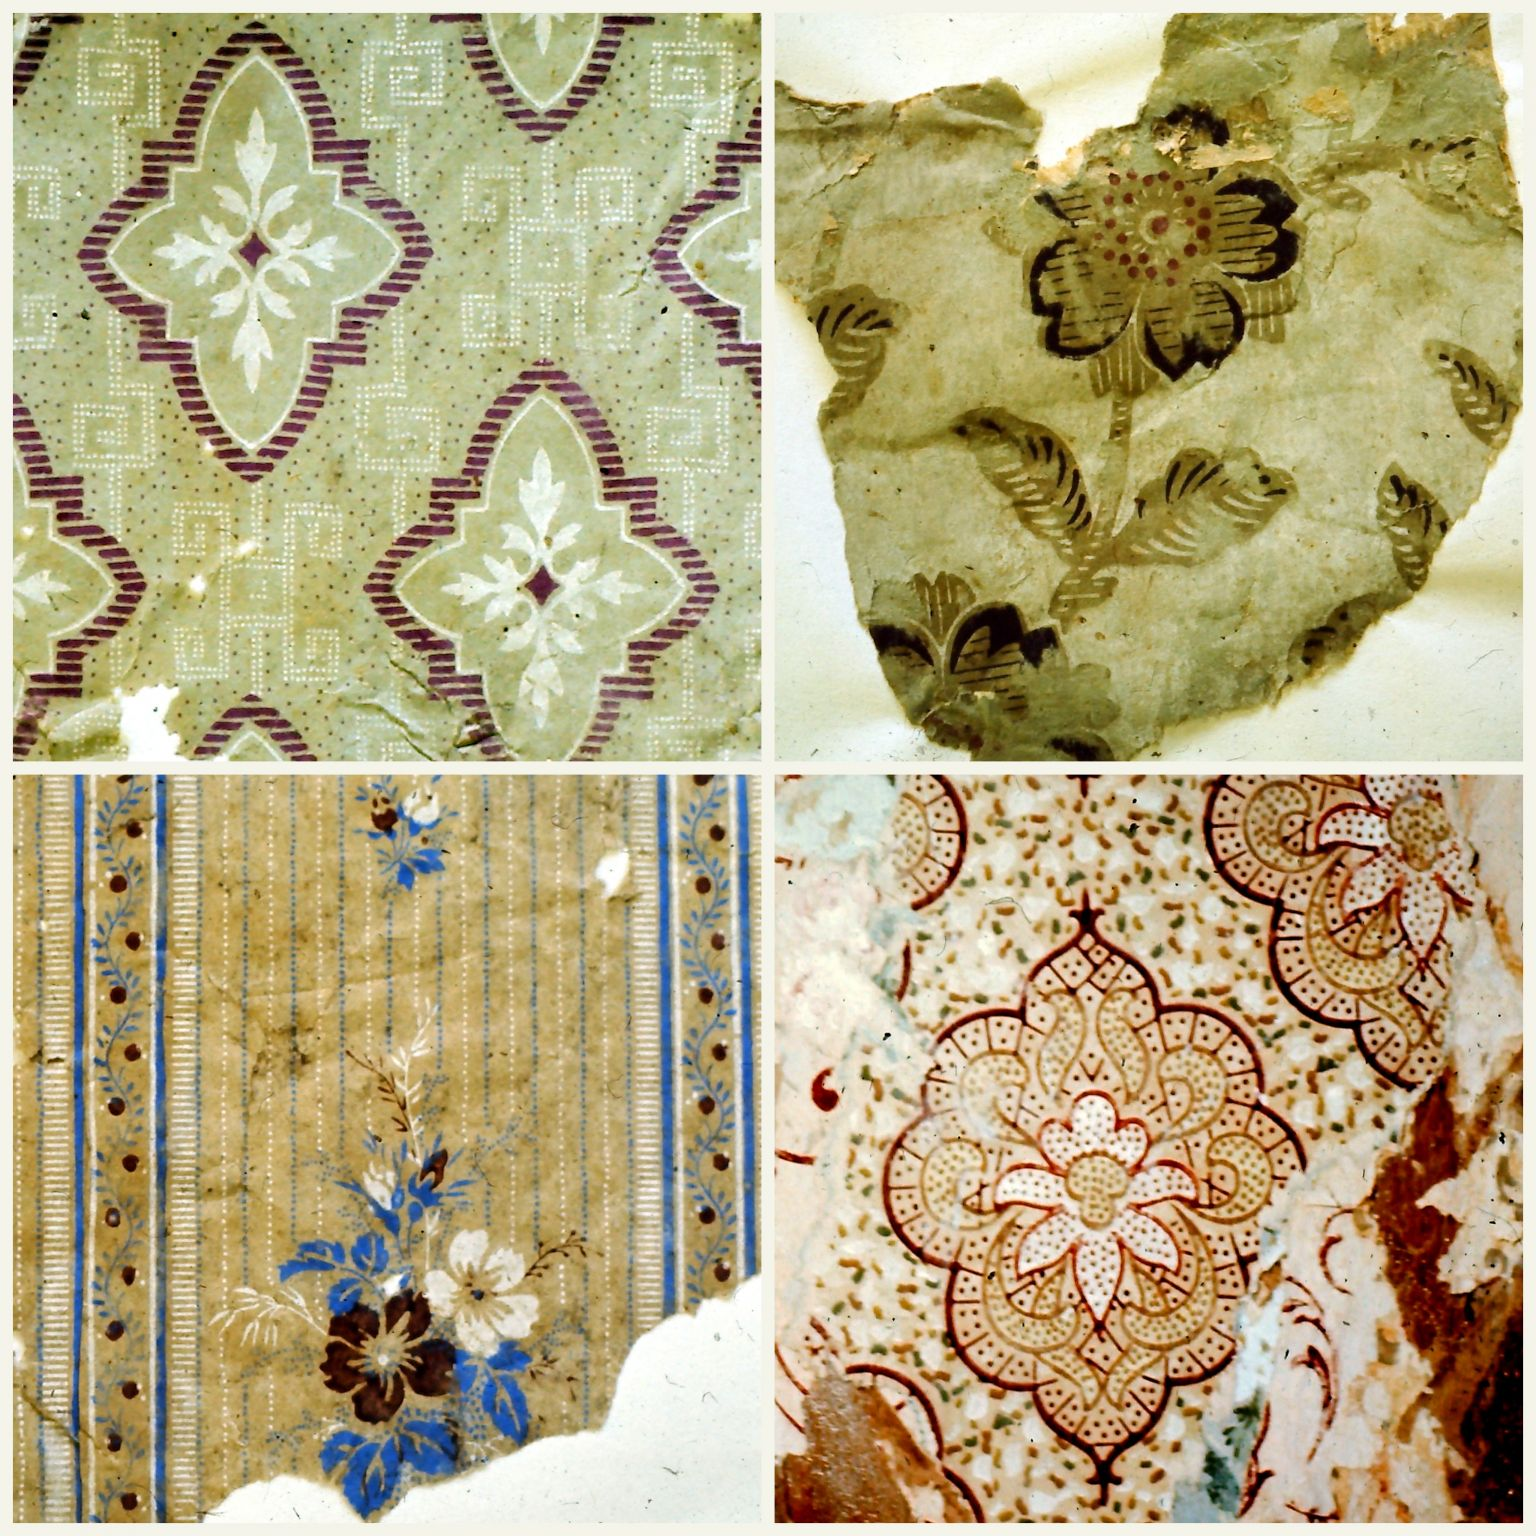 Counting flowers on the wall: noticing the wallpaper | Noticed in ...